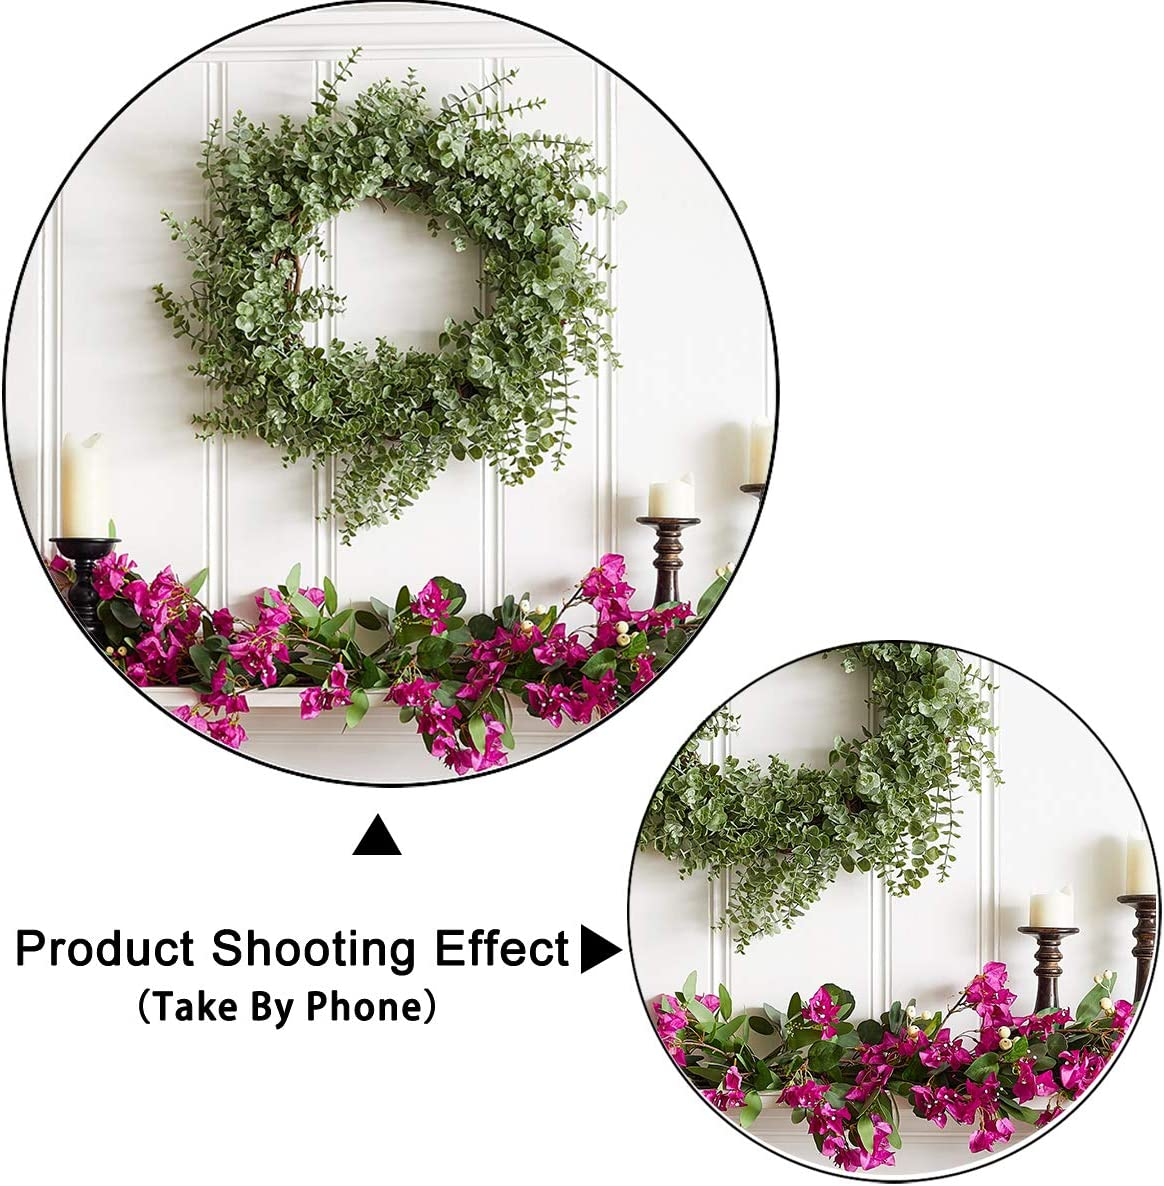 Levoo Flannel Flowers and Grass Wall Background Banner Photography Studio Boy Girl Birthday Family Party Holiday Celebration Romantic Wedding Photography Backdrop Home Decoration 6x4ft,chy324